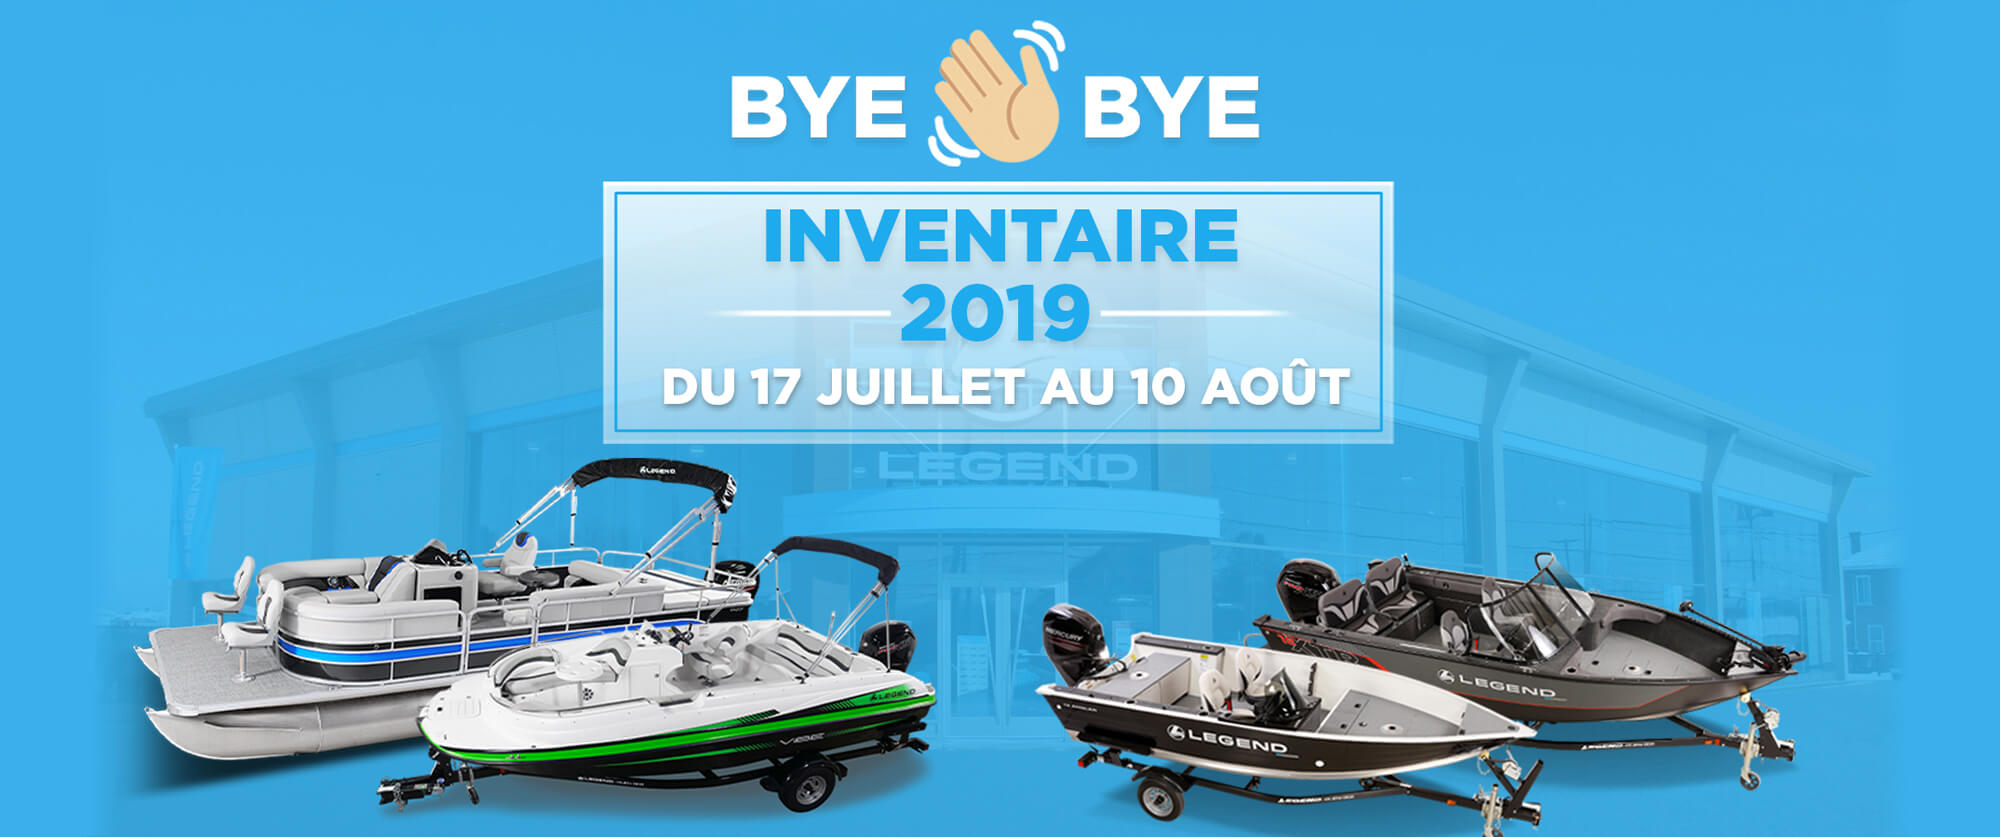 Bye Bye Inventaire 2019